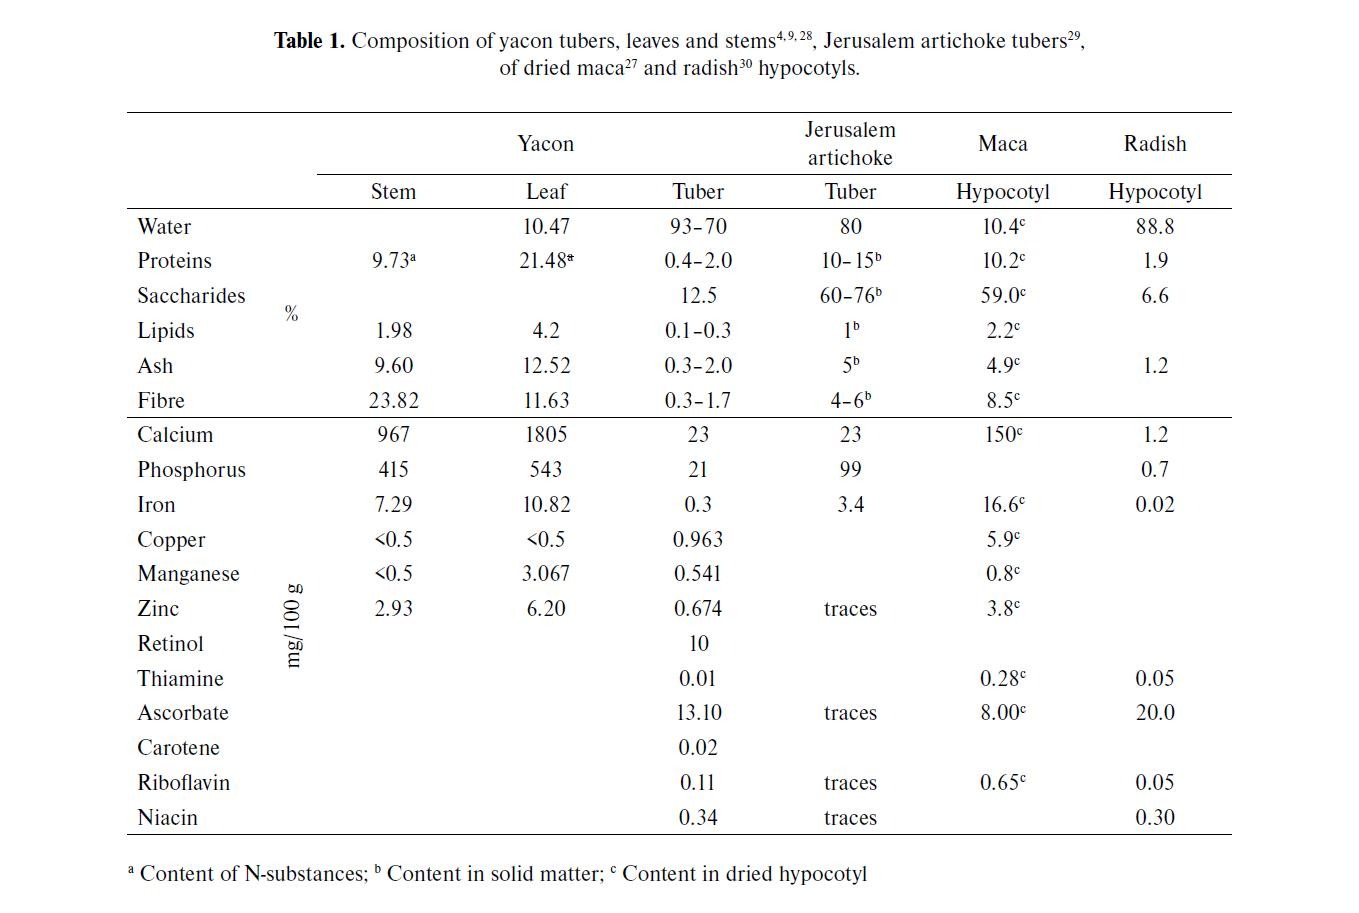 Table 1. Composition of Yacon Tubers Leaves and Stems